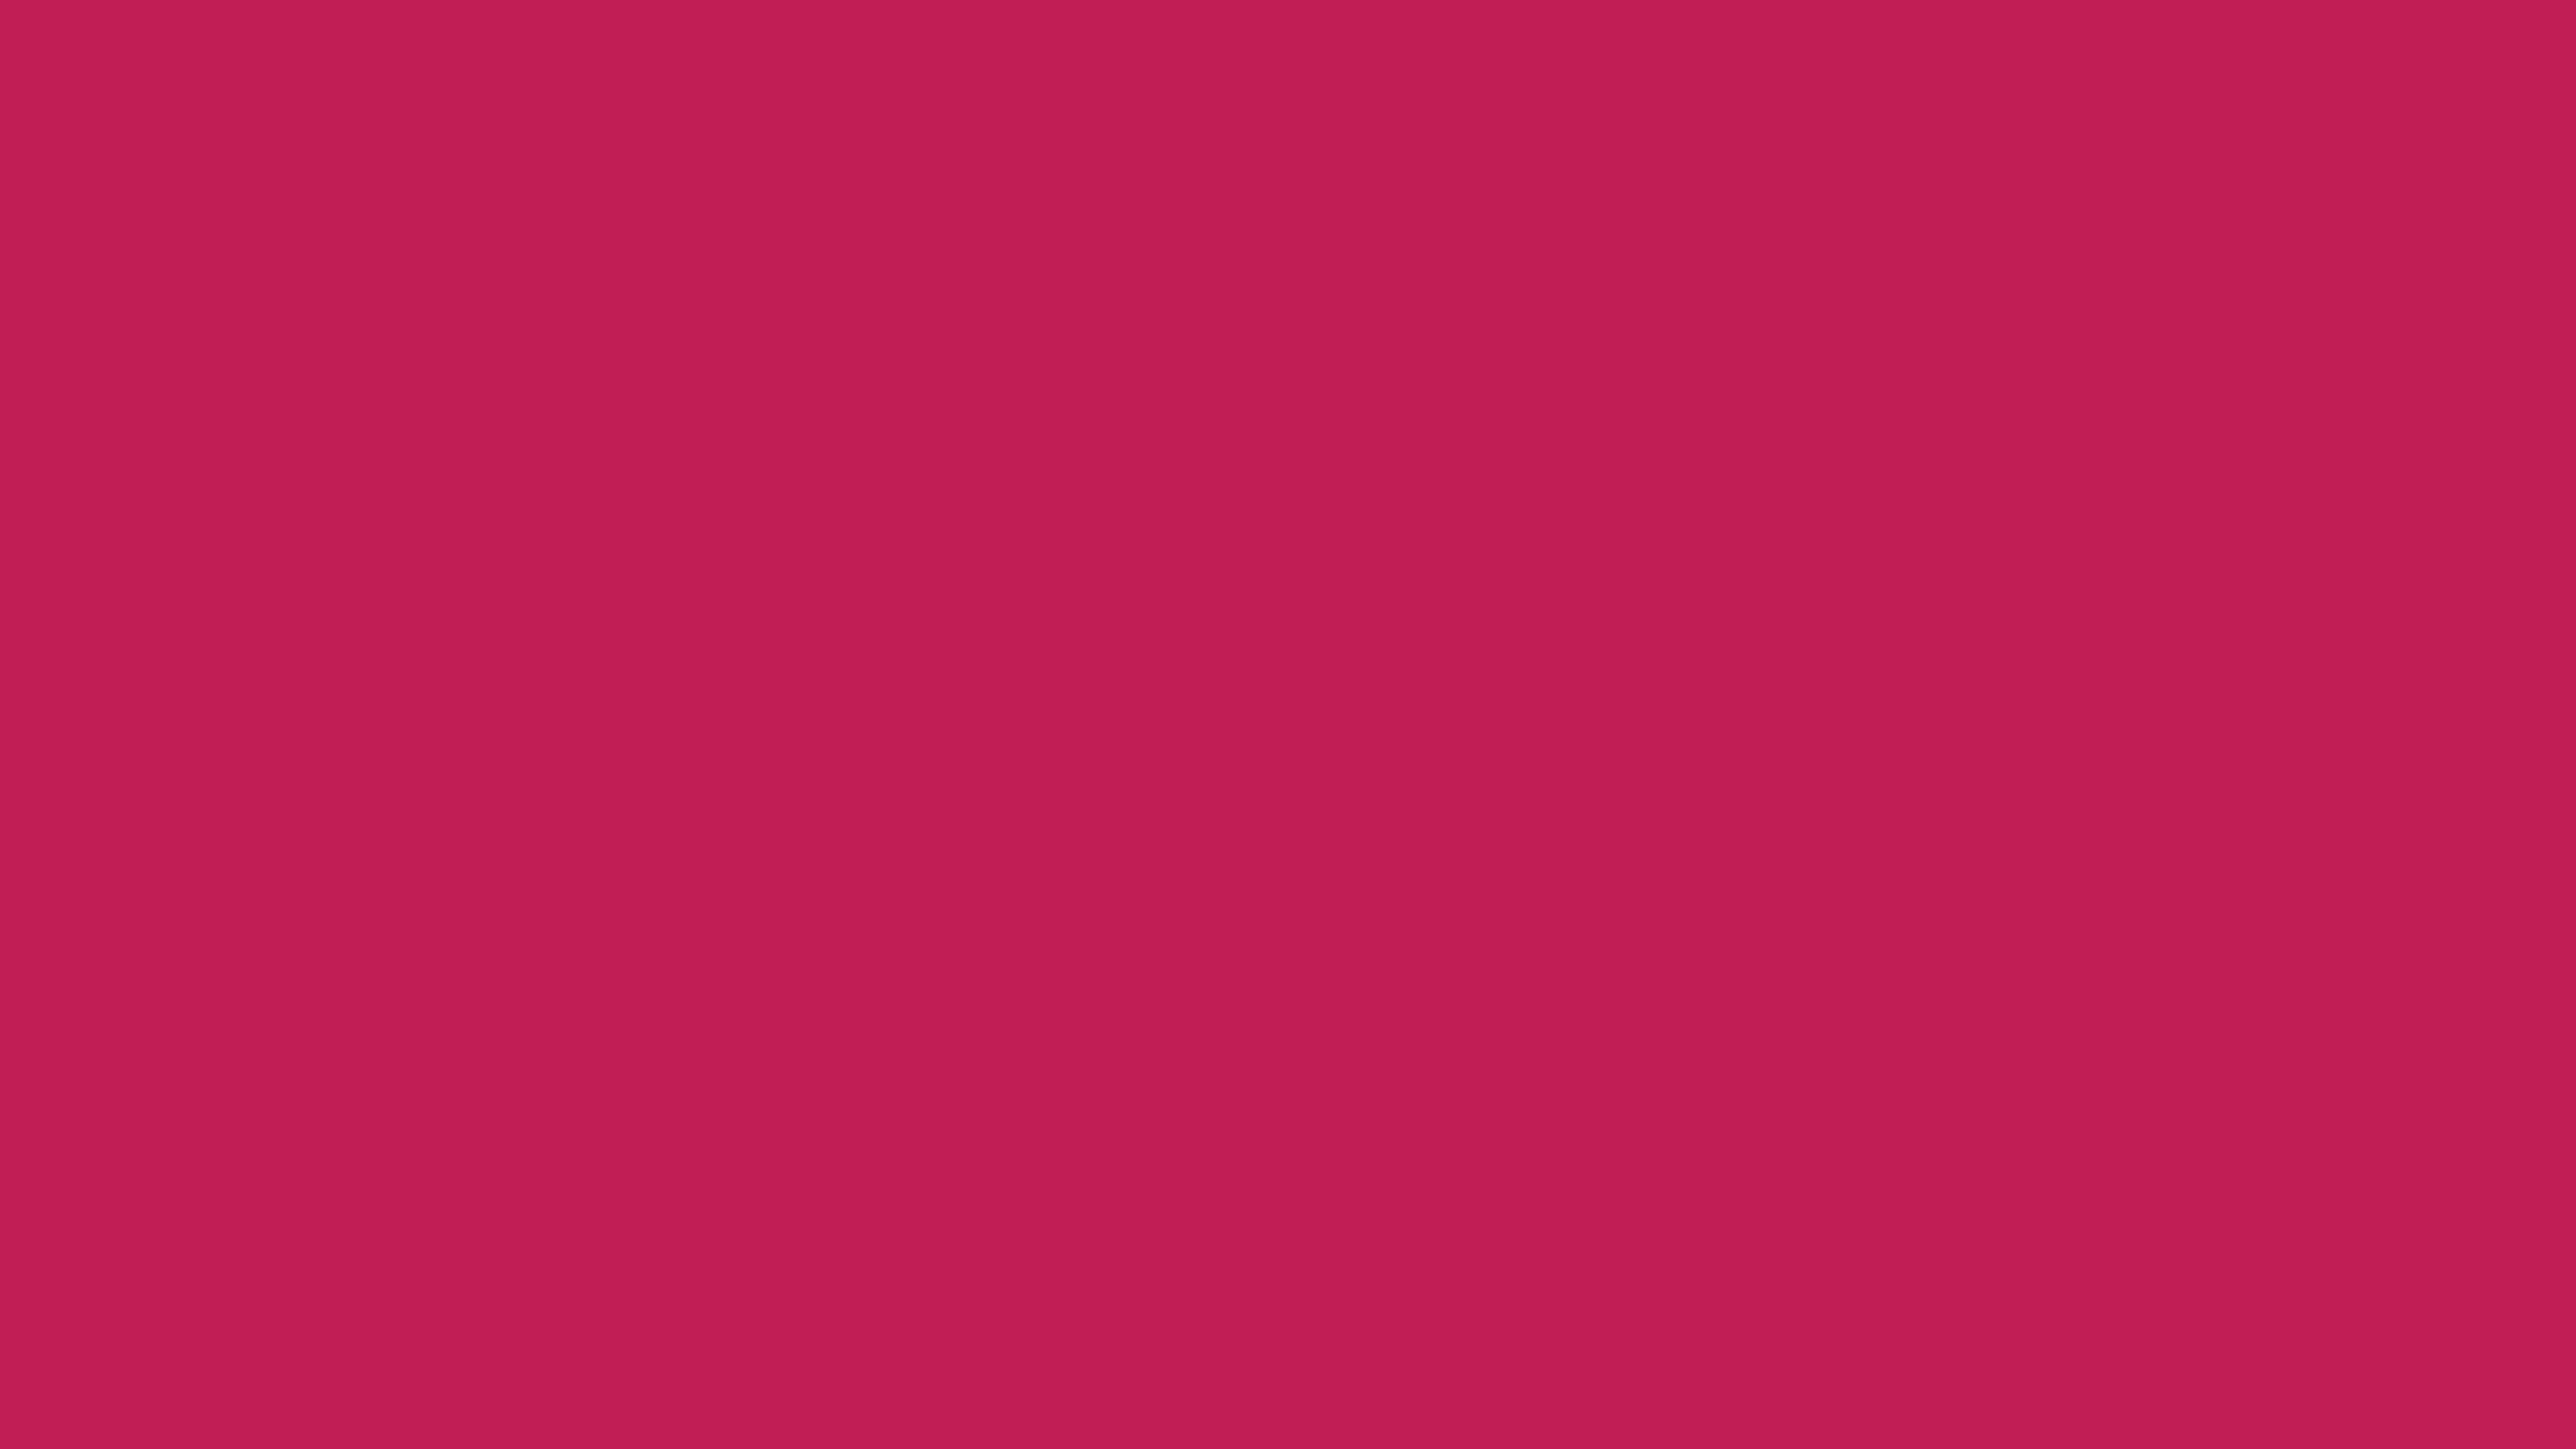 7680x4320 Rose Red Solid Color Background